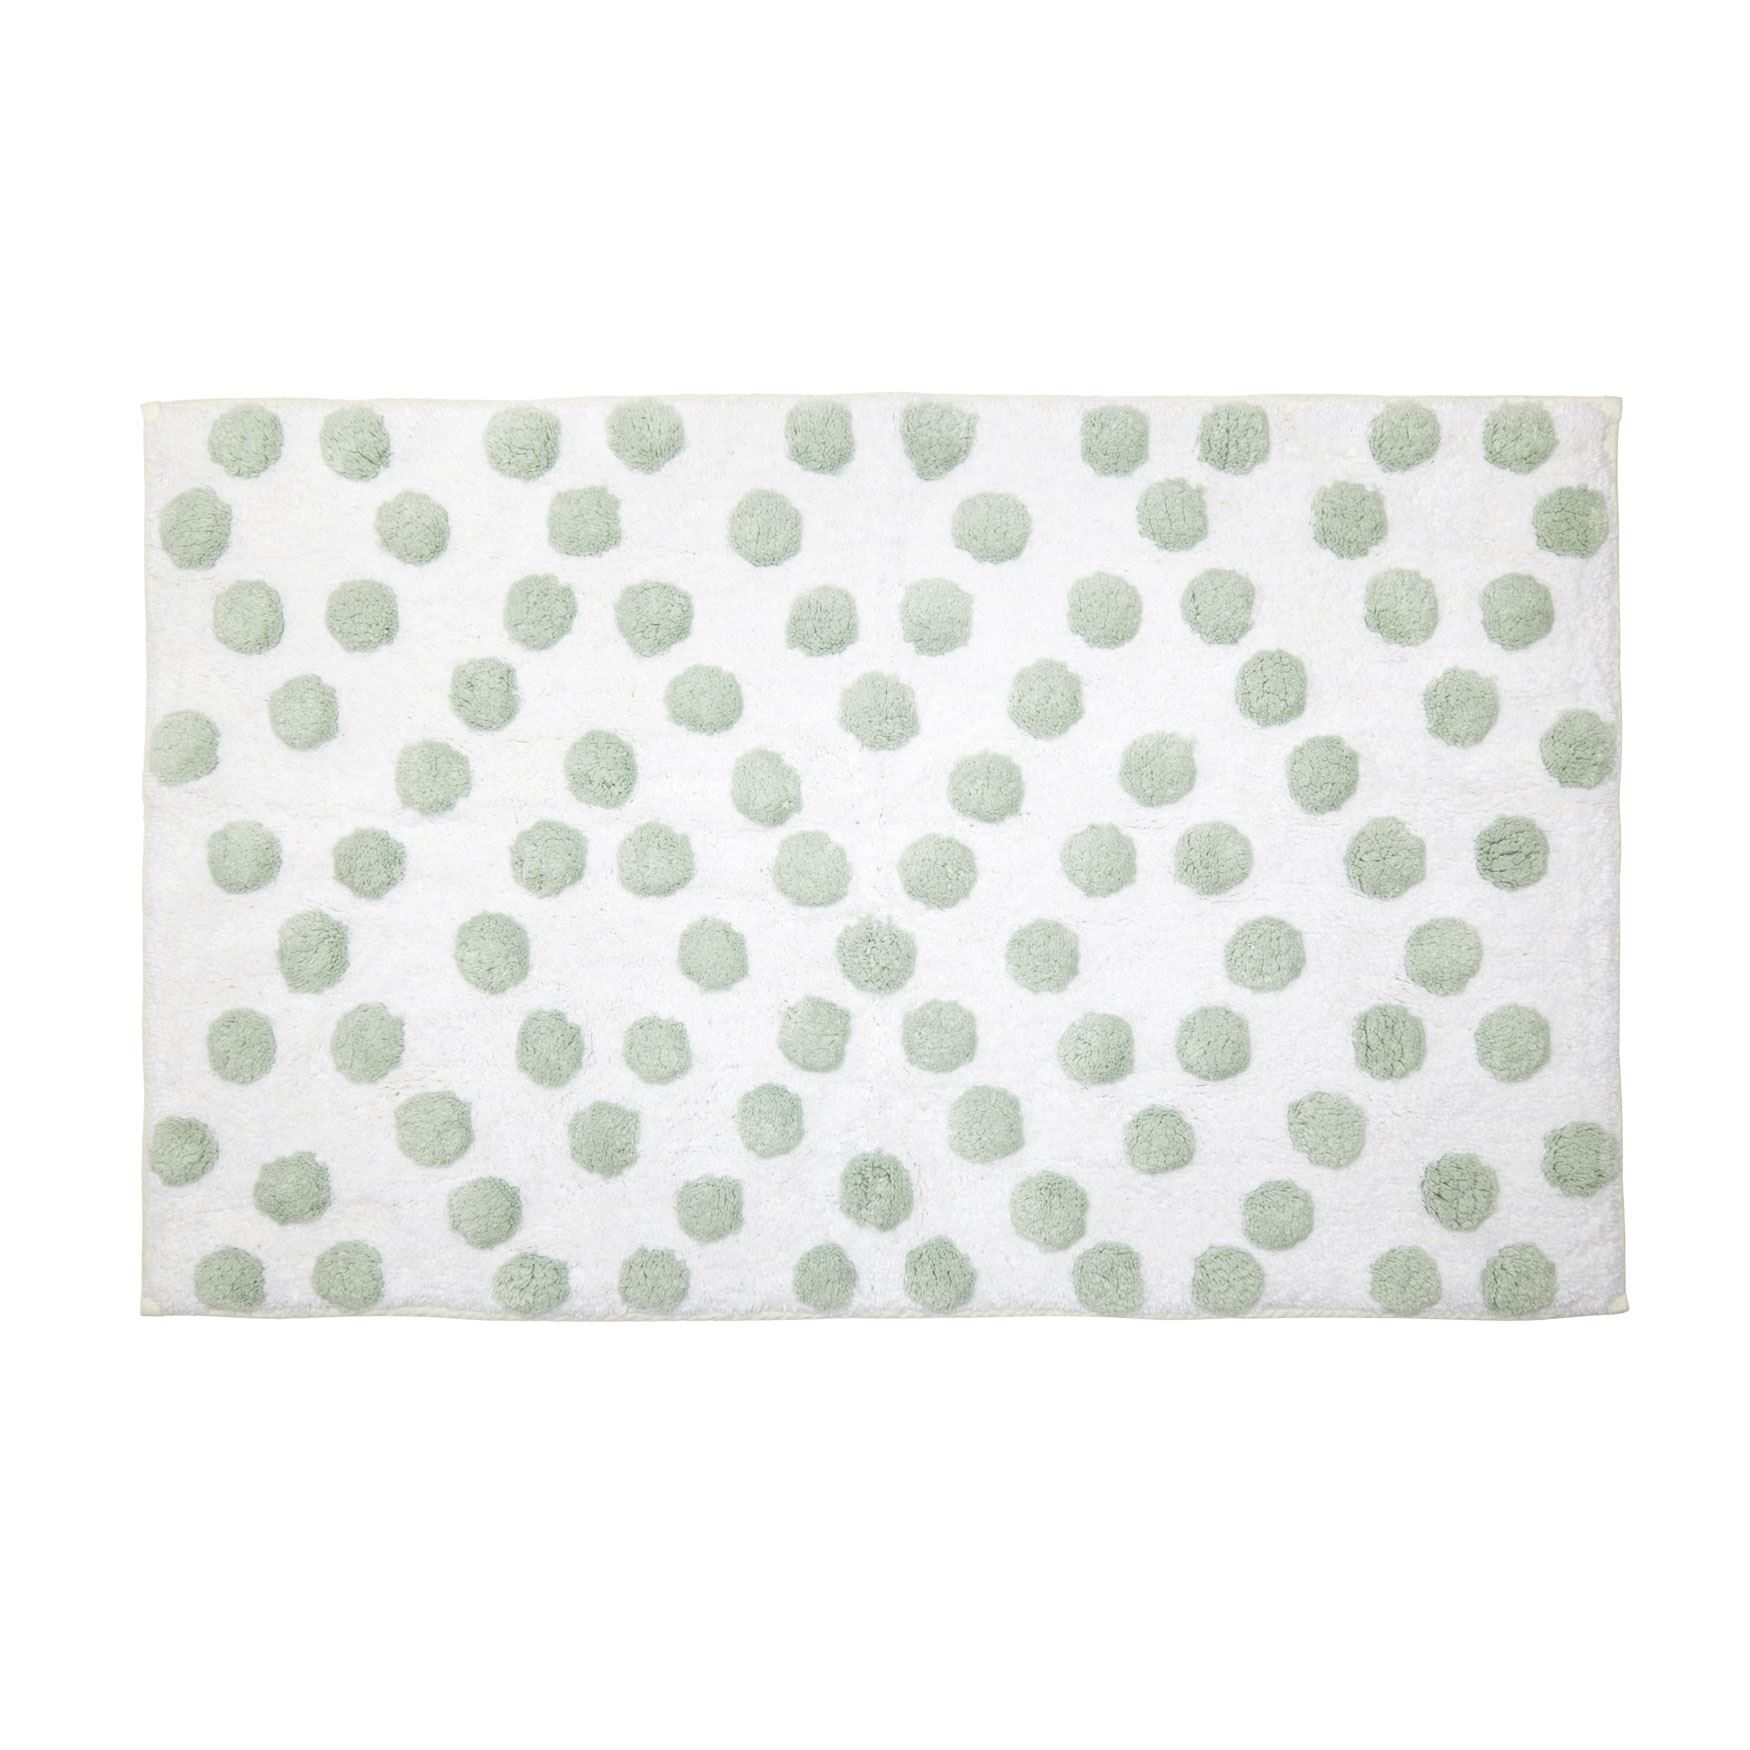 Dots Large Cotton Bath Rug , SURF SPRAY